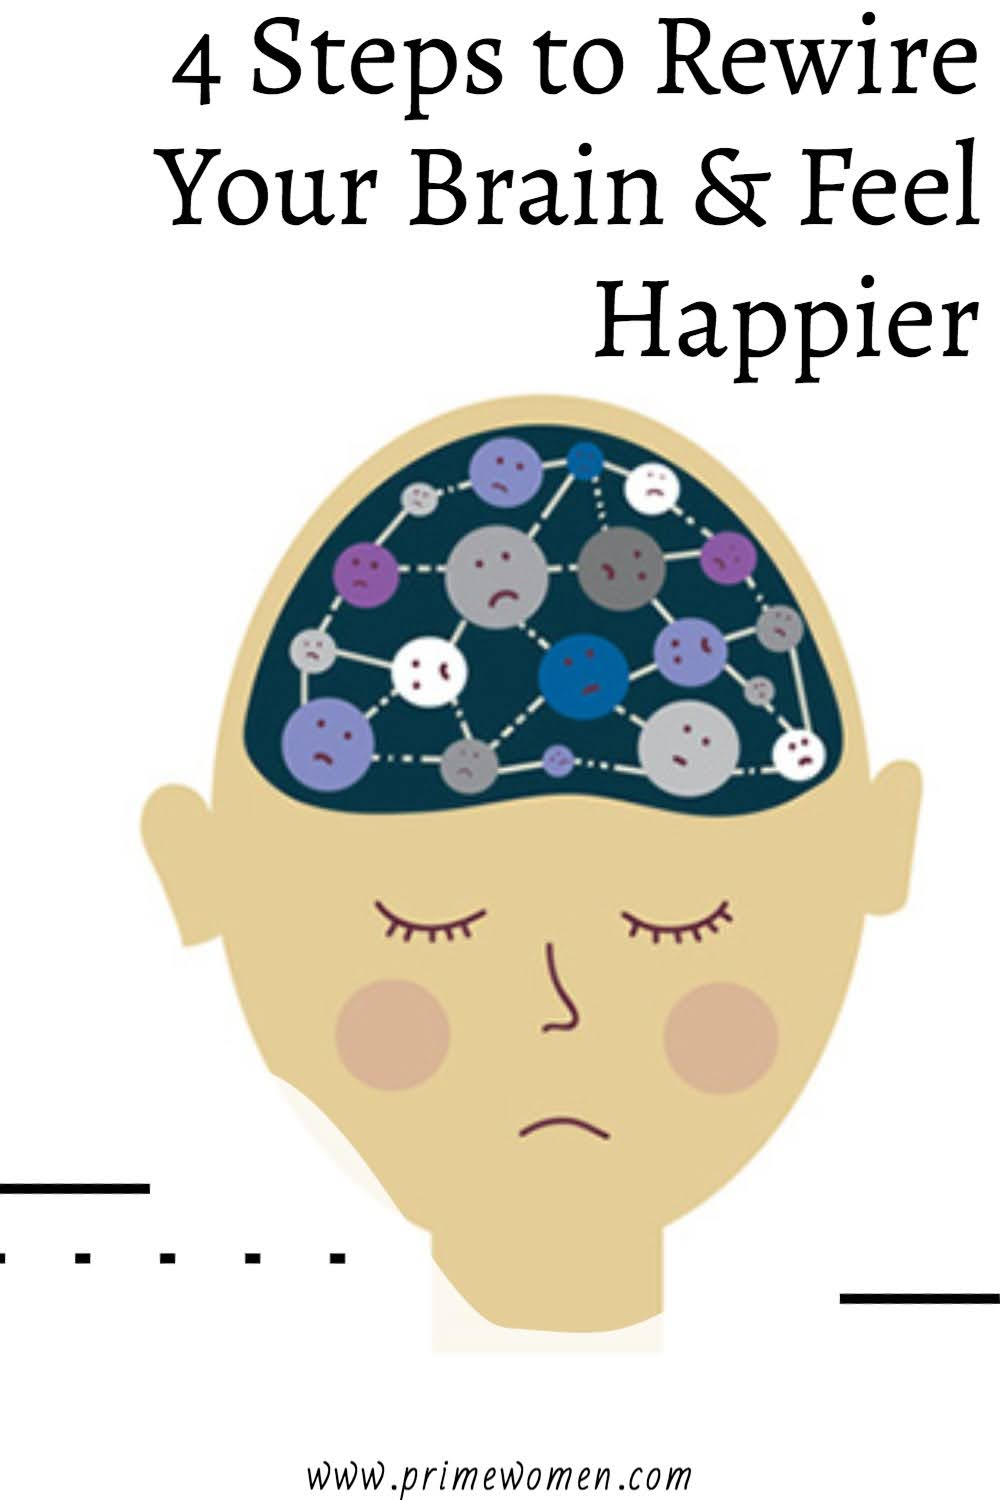 4 Ways to rewire your brain and feel happier